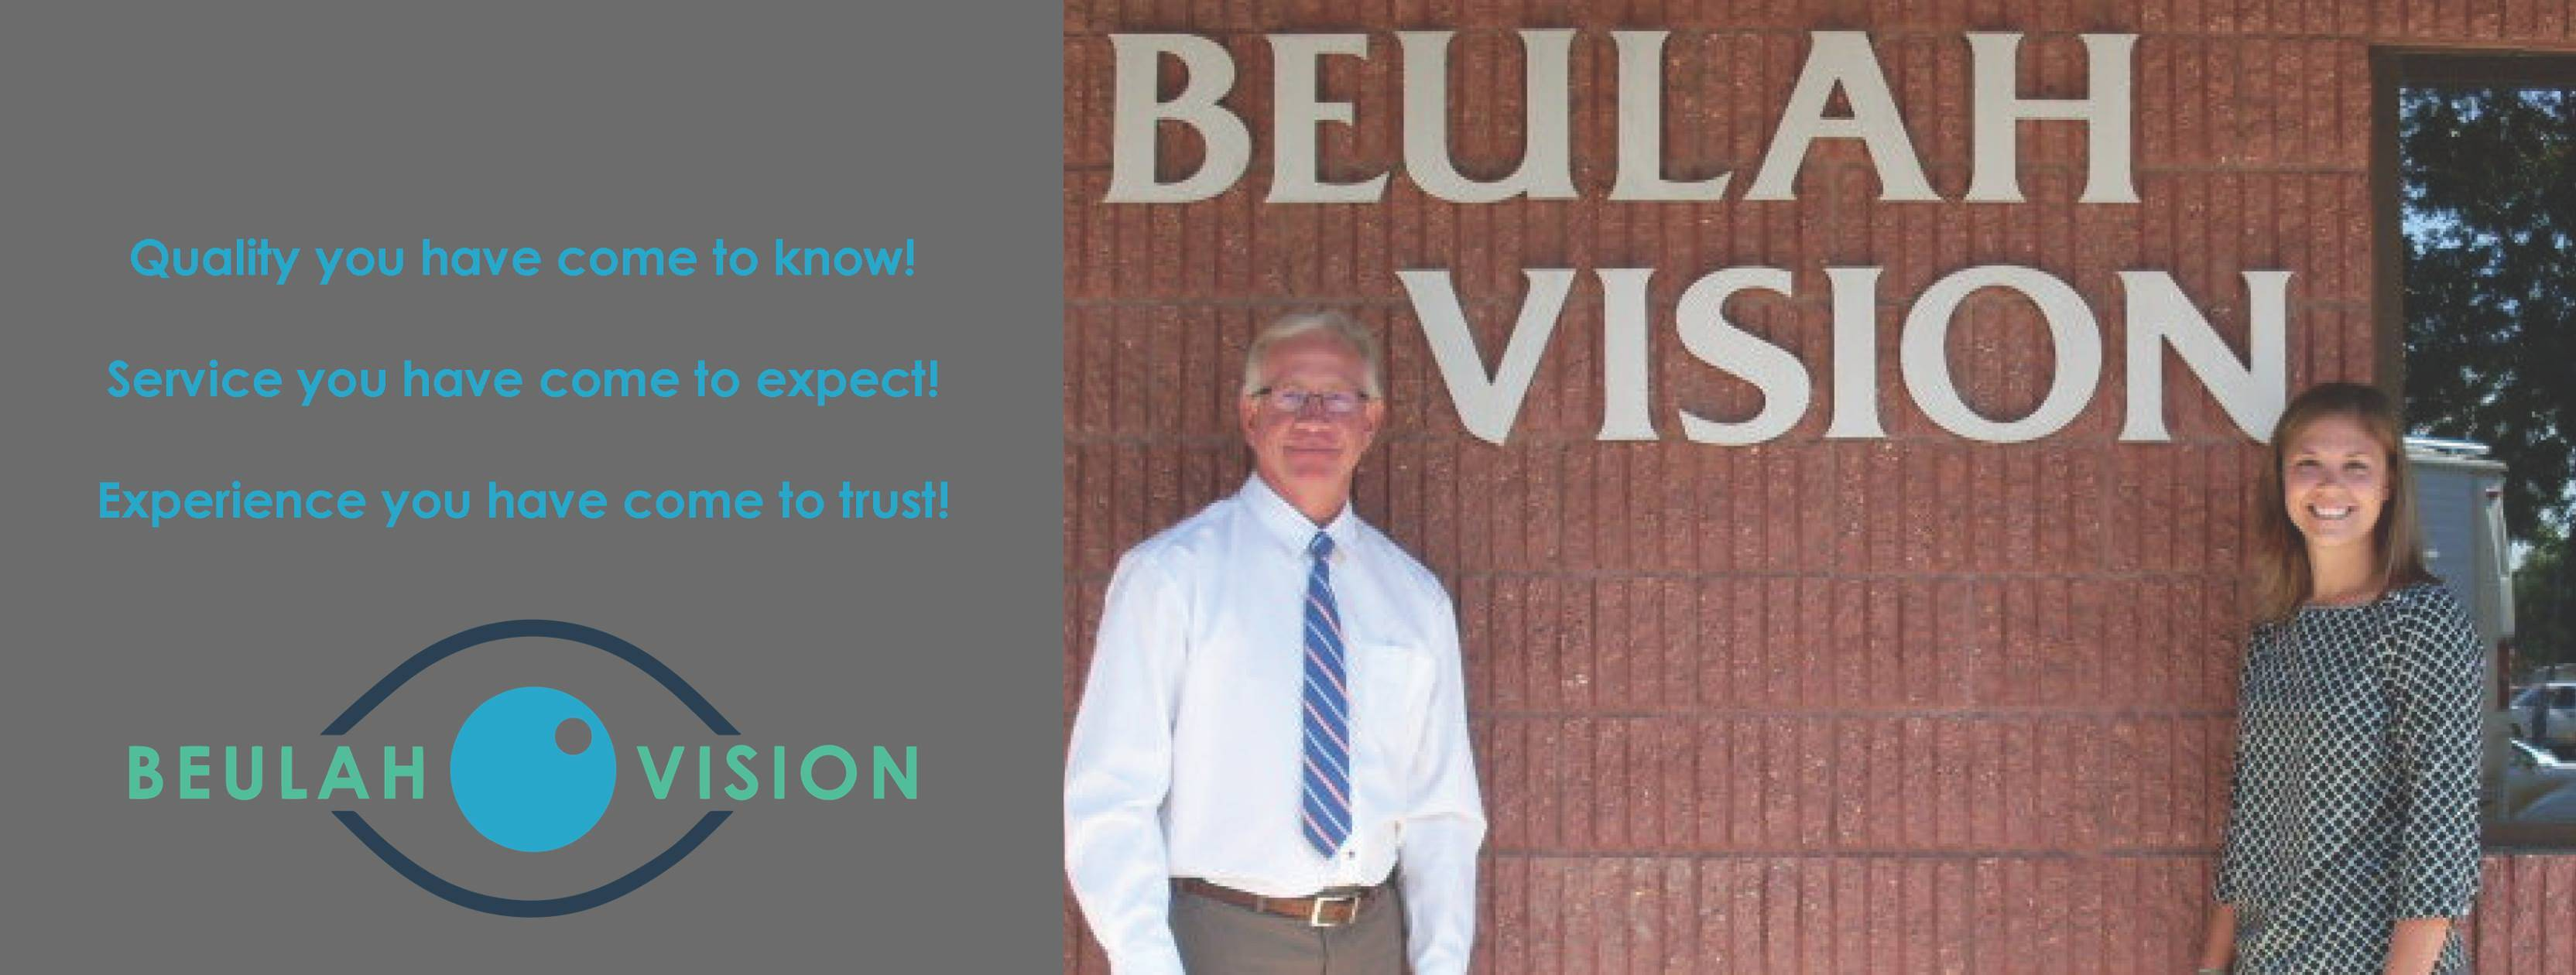 Beulah Vision exterior with drs